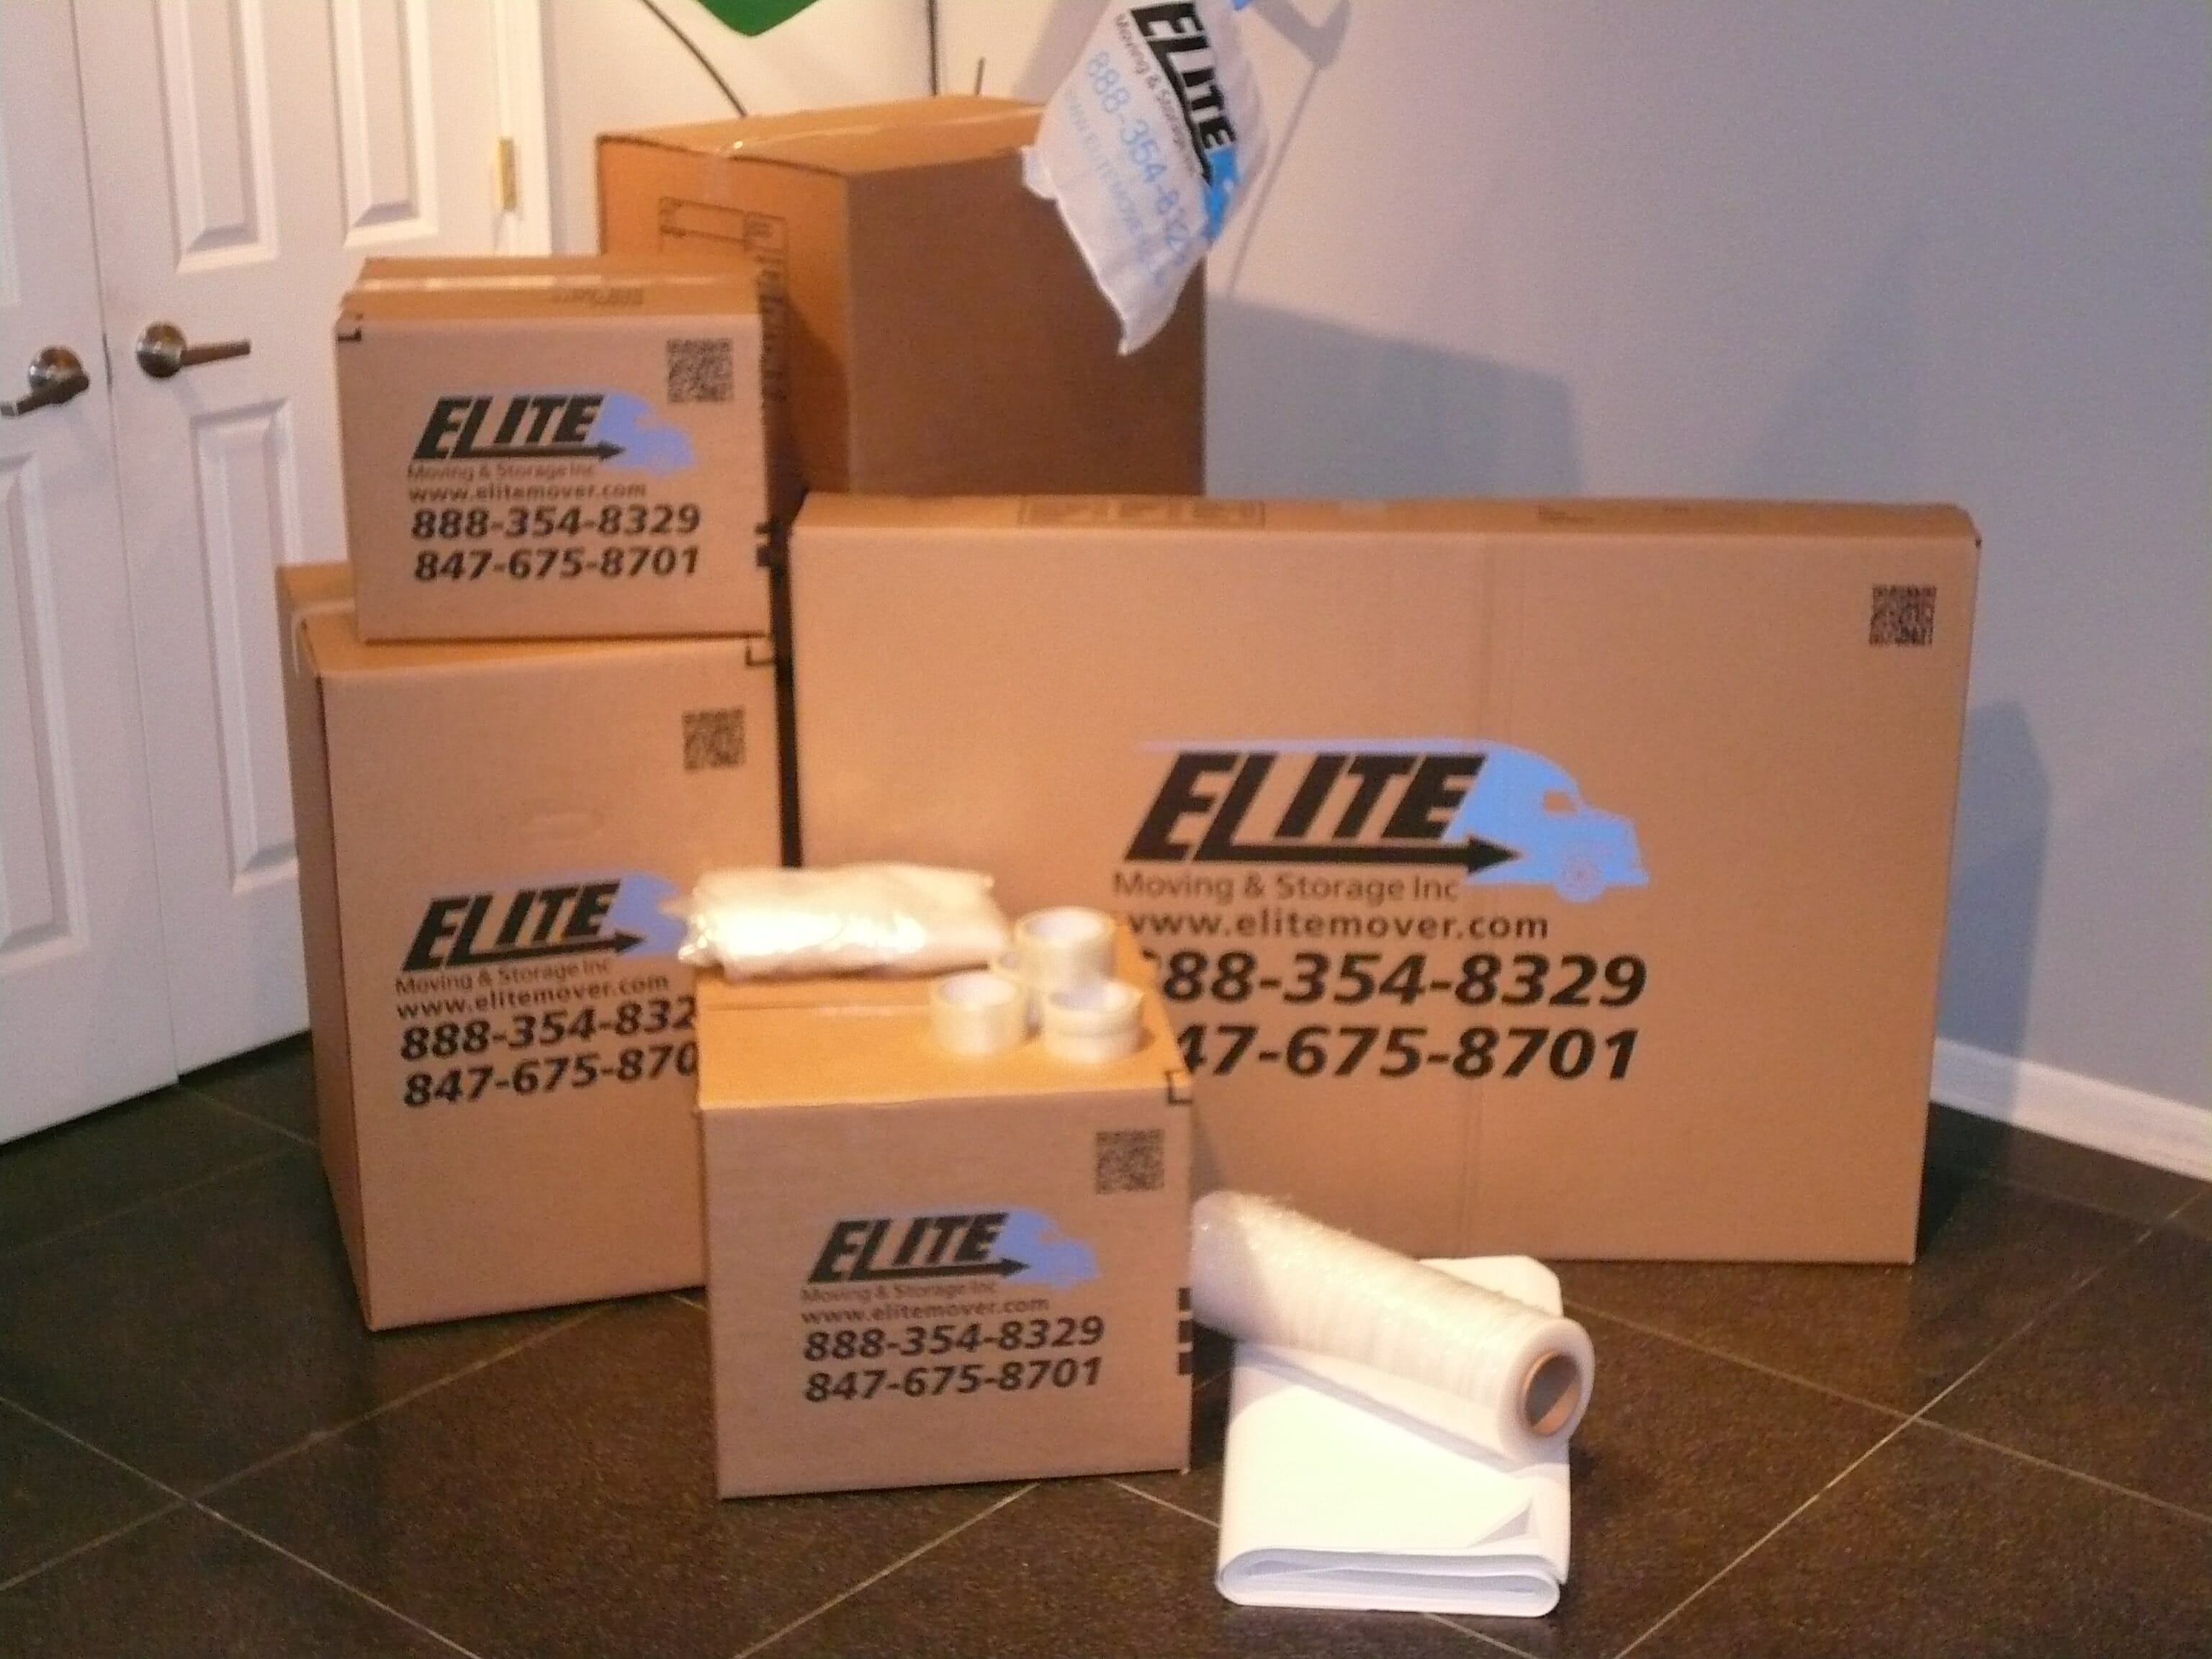 Moving boxes various sizes, packing supplies, Elite logo